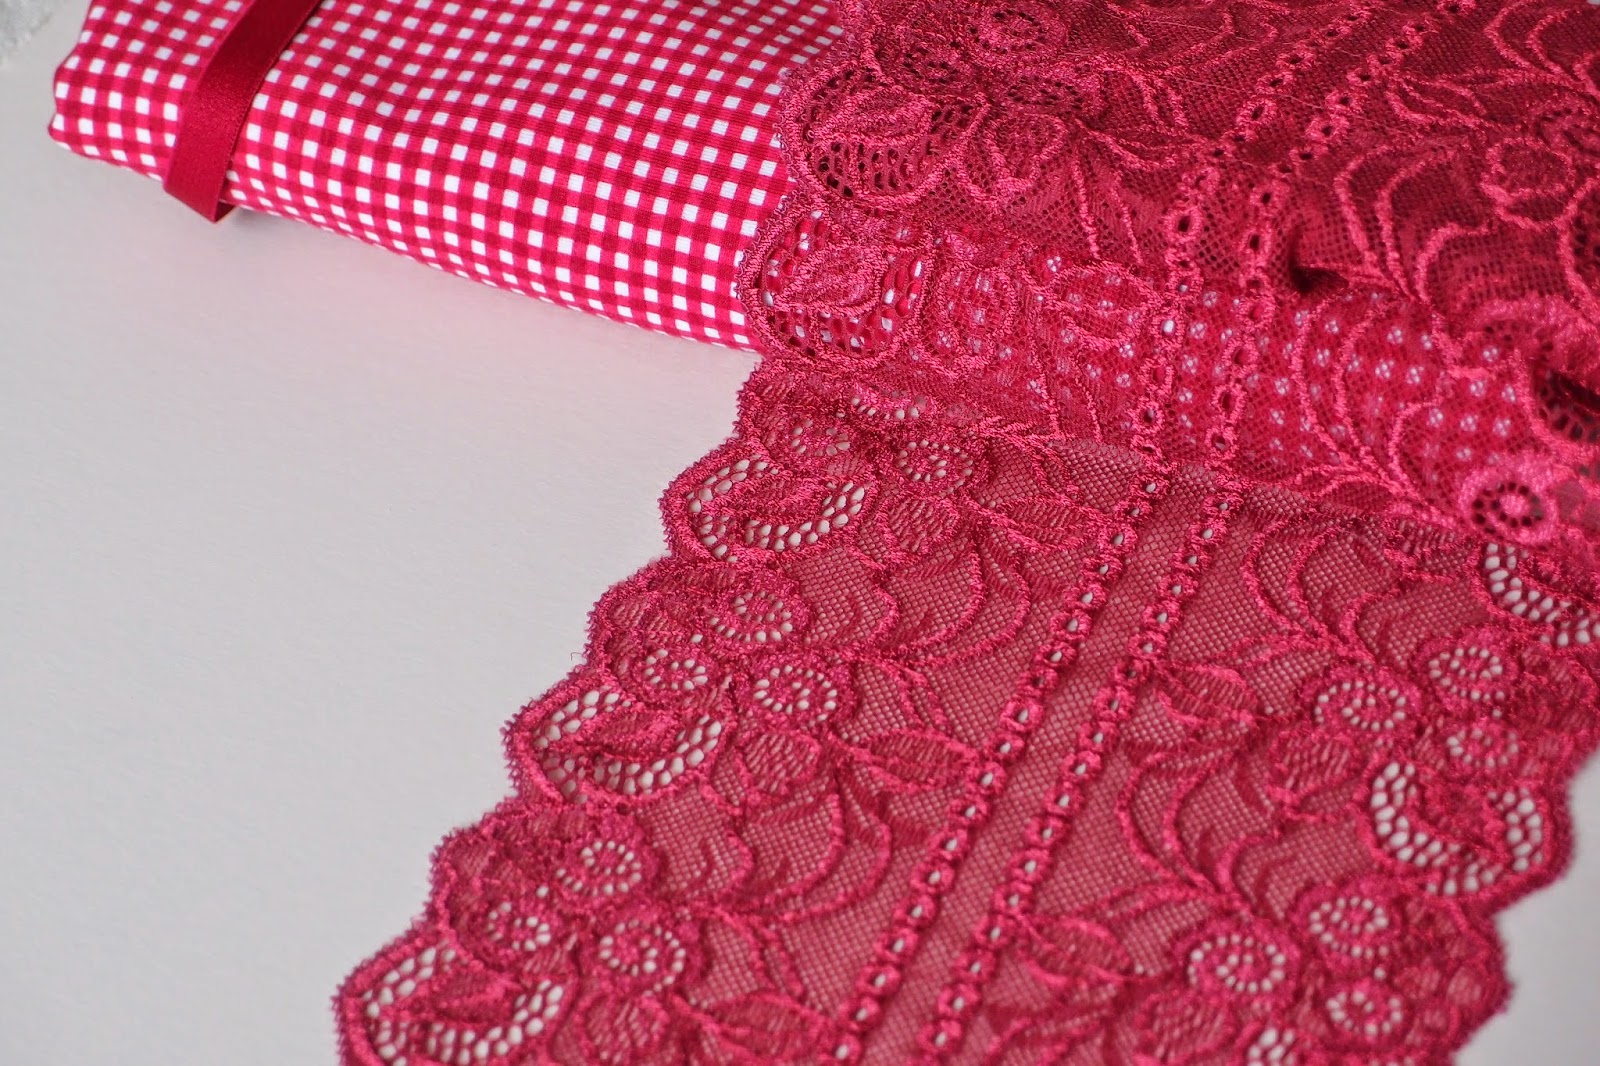 New combo - red checks cotton tricot and matching wine lace for next lingerie project